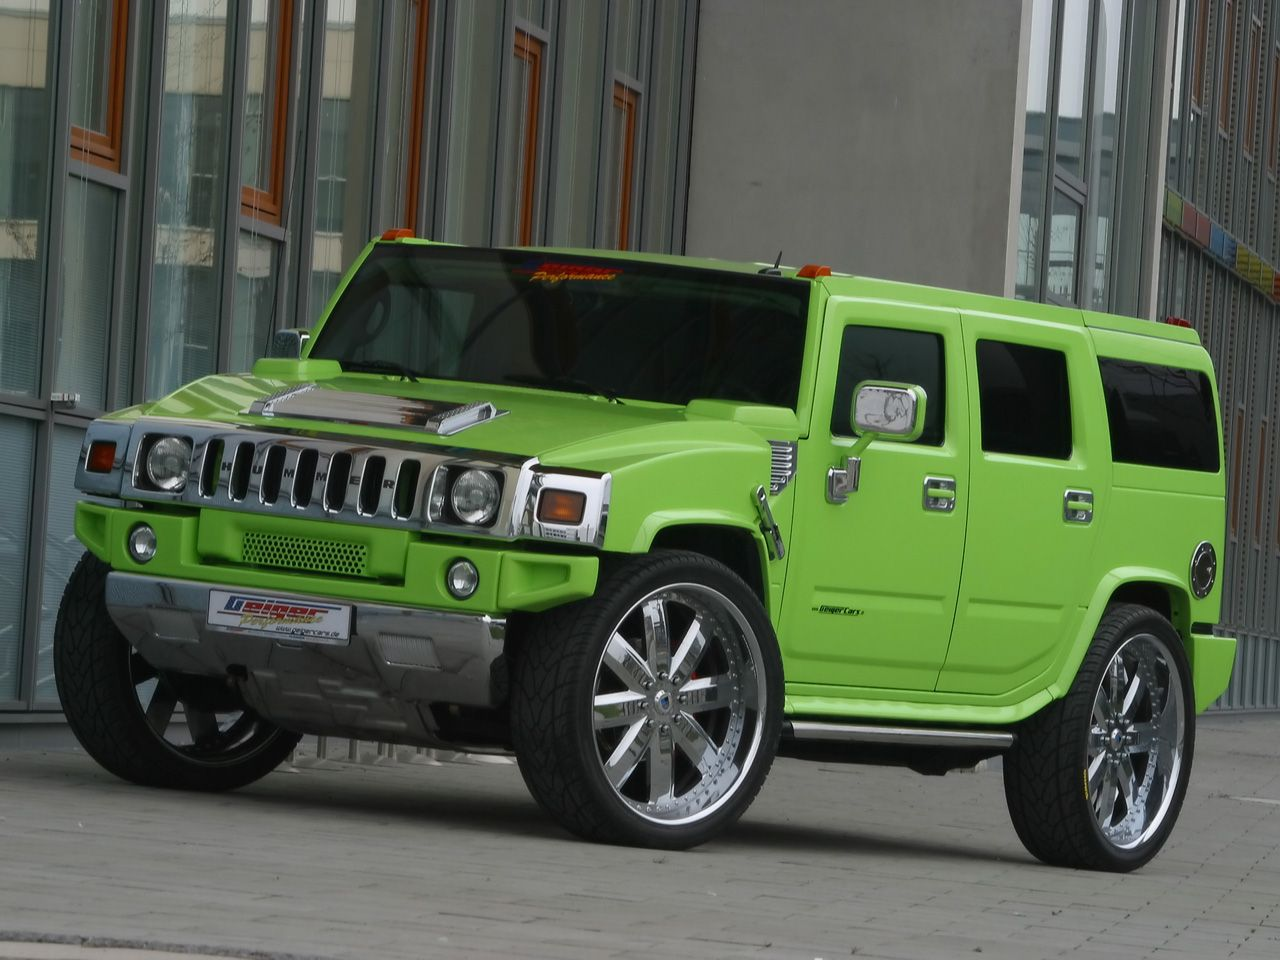 Hummers labels bizarre vehicles car modifications hummer modded cars email